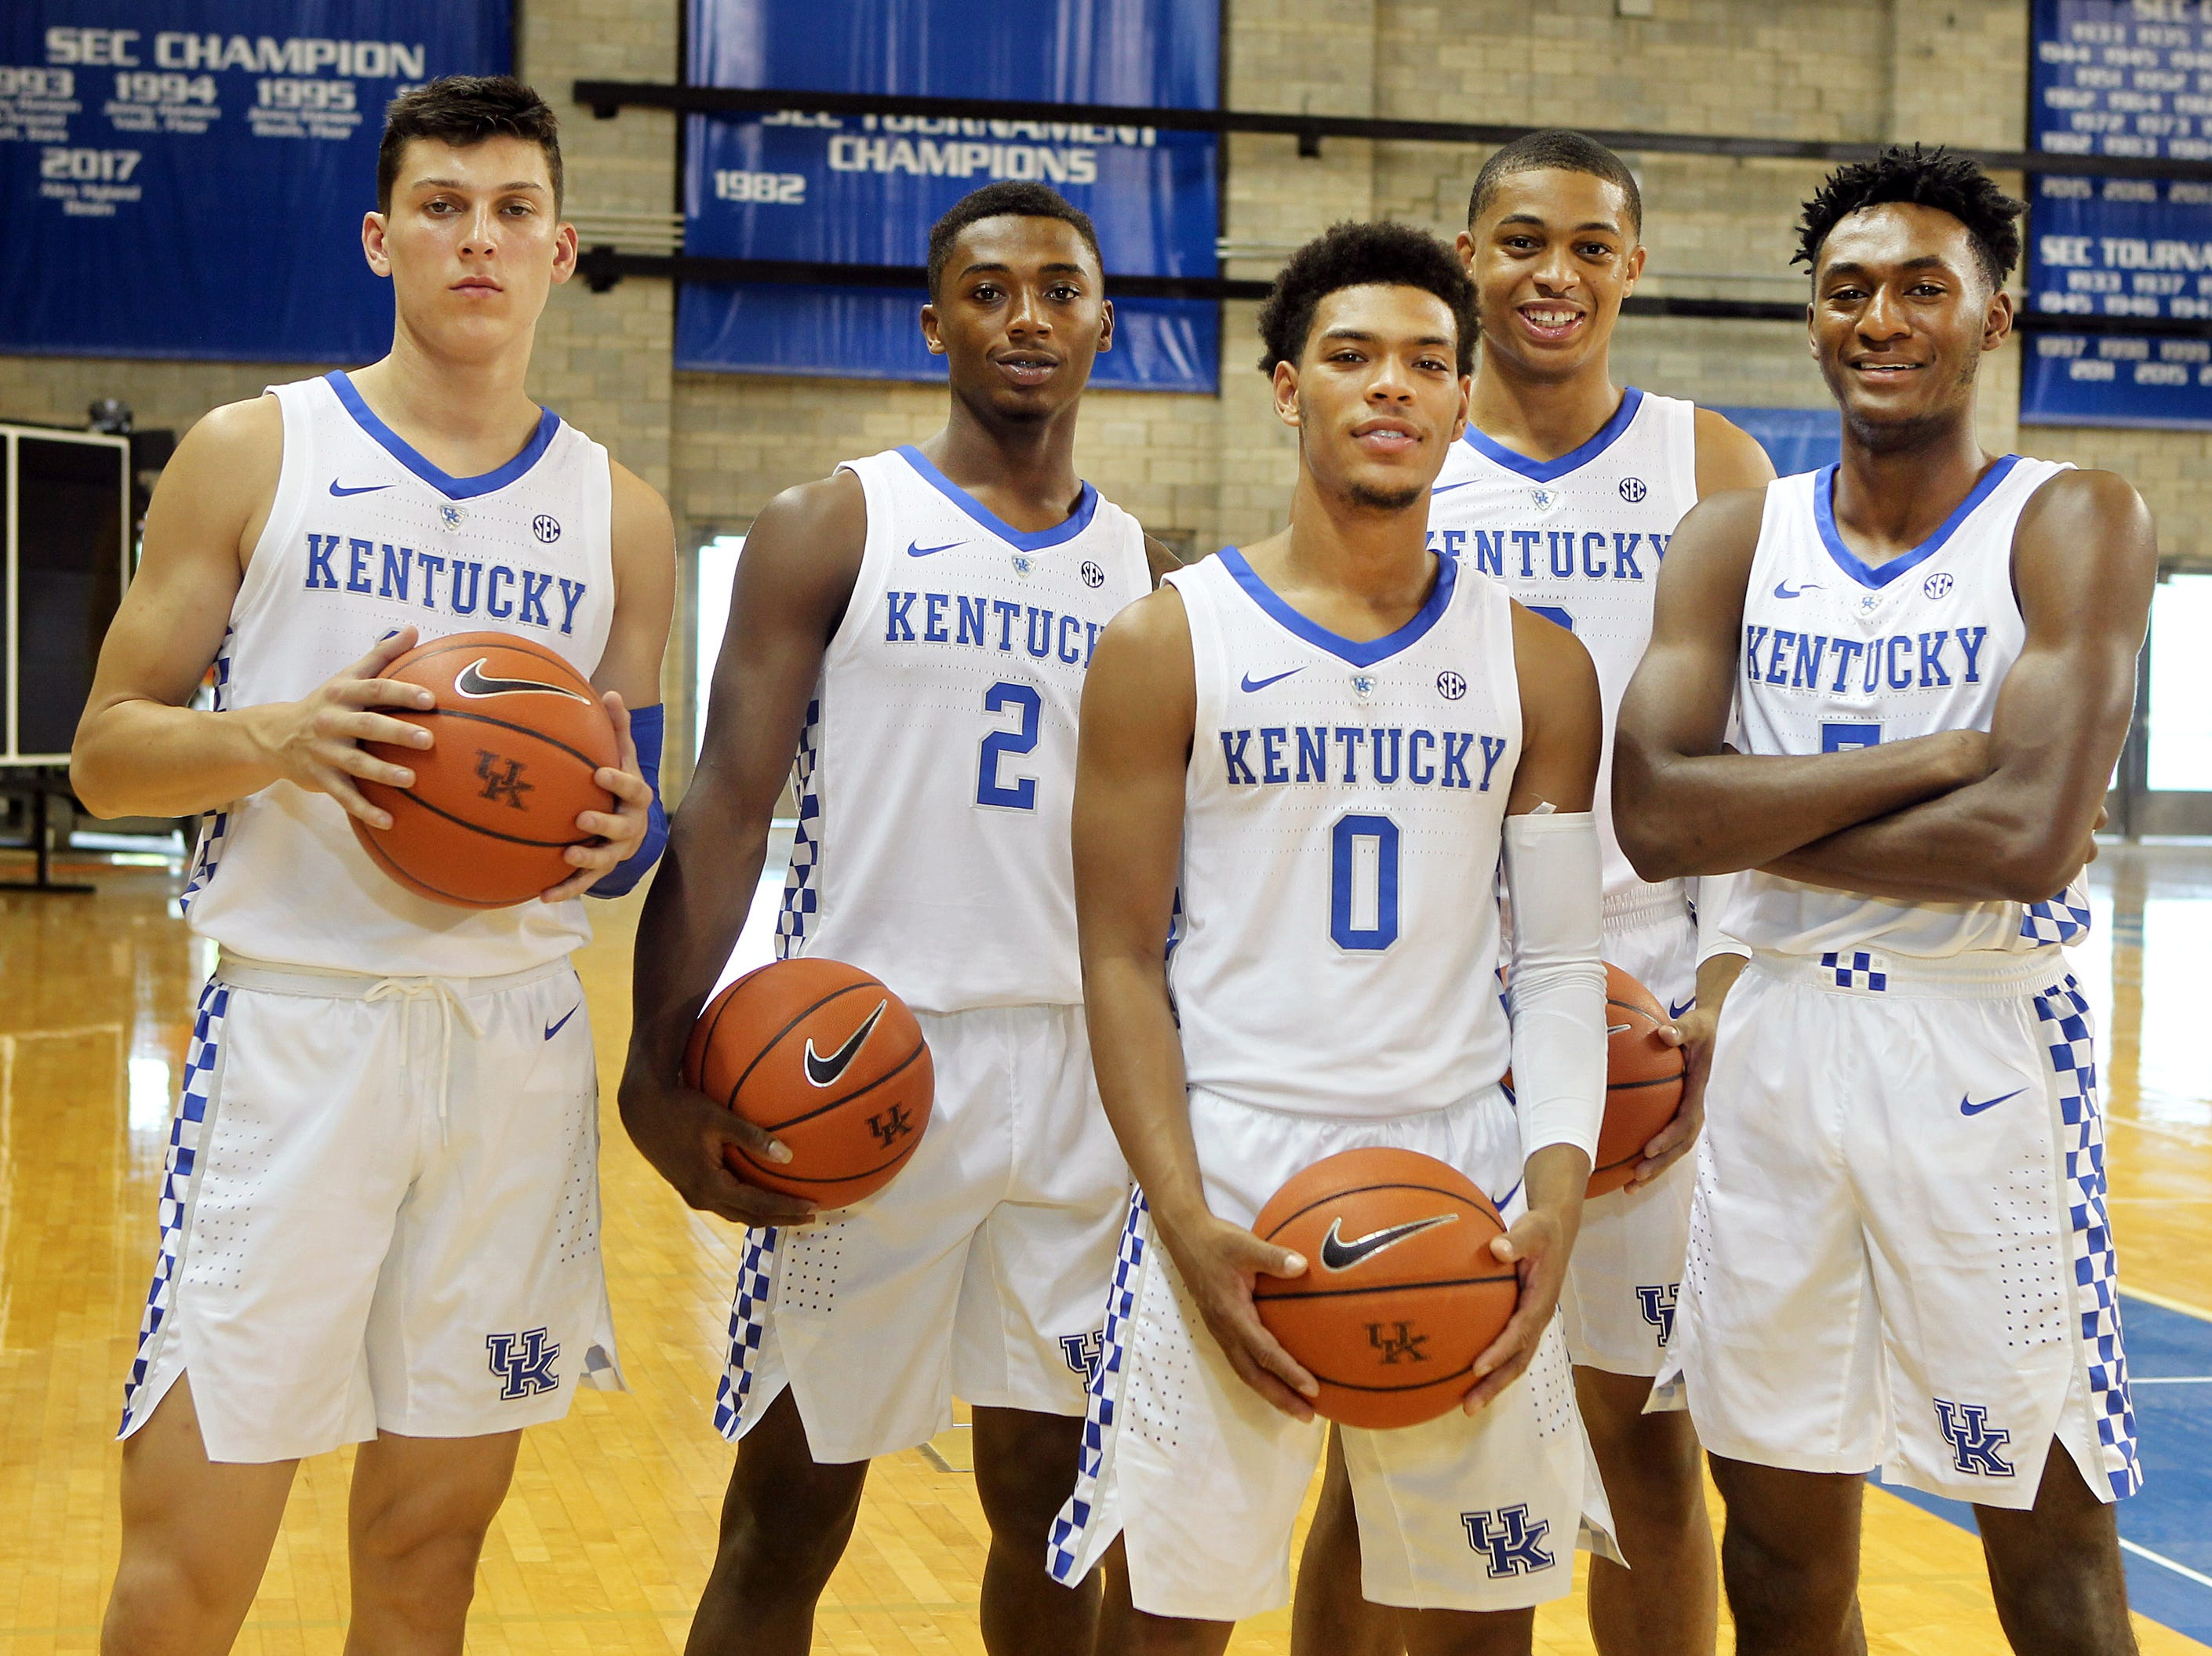 Kentucky guards (from left) Tyler Herro (14), Ashton Hagans (2), Quade Green (0), Keldon Johnson (3) and Immanuel Quickley (5) pose during the teams picture day in Memorial Coliseum on campus. Sep. 20, 2018